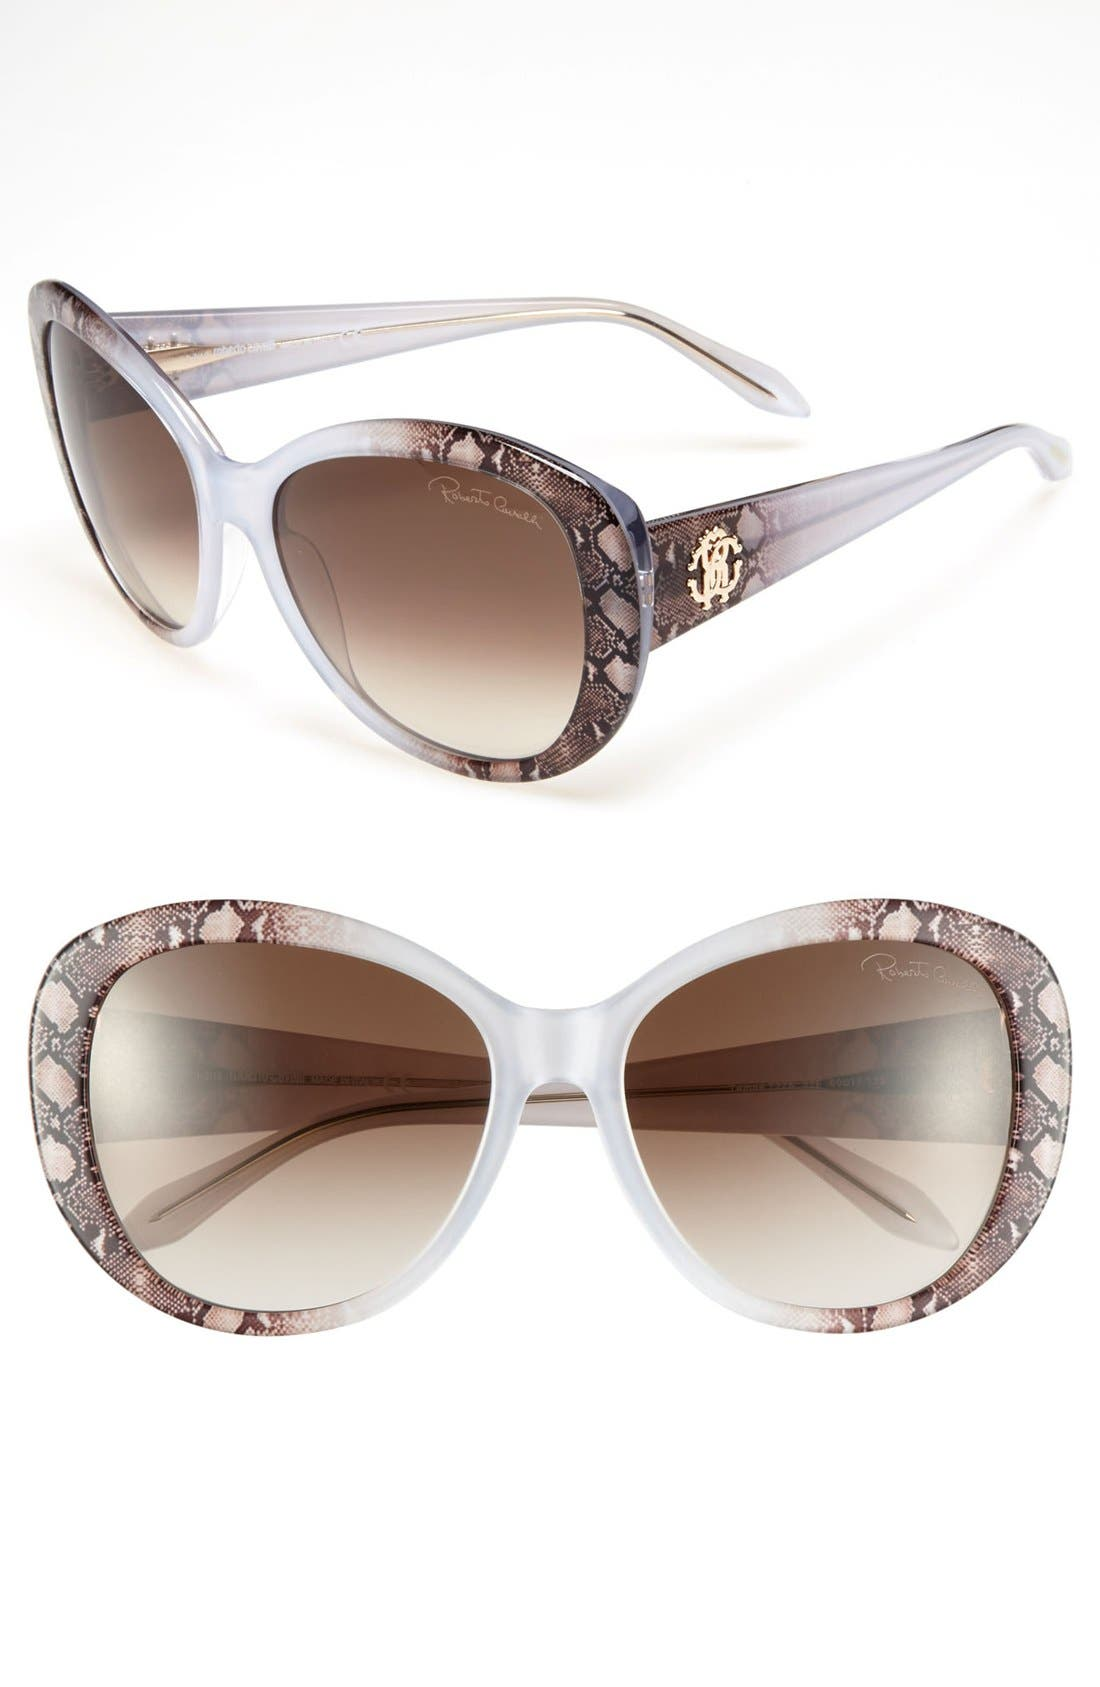 Main Image - Roberto Cavalli 60mm Oval Sunglasses